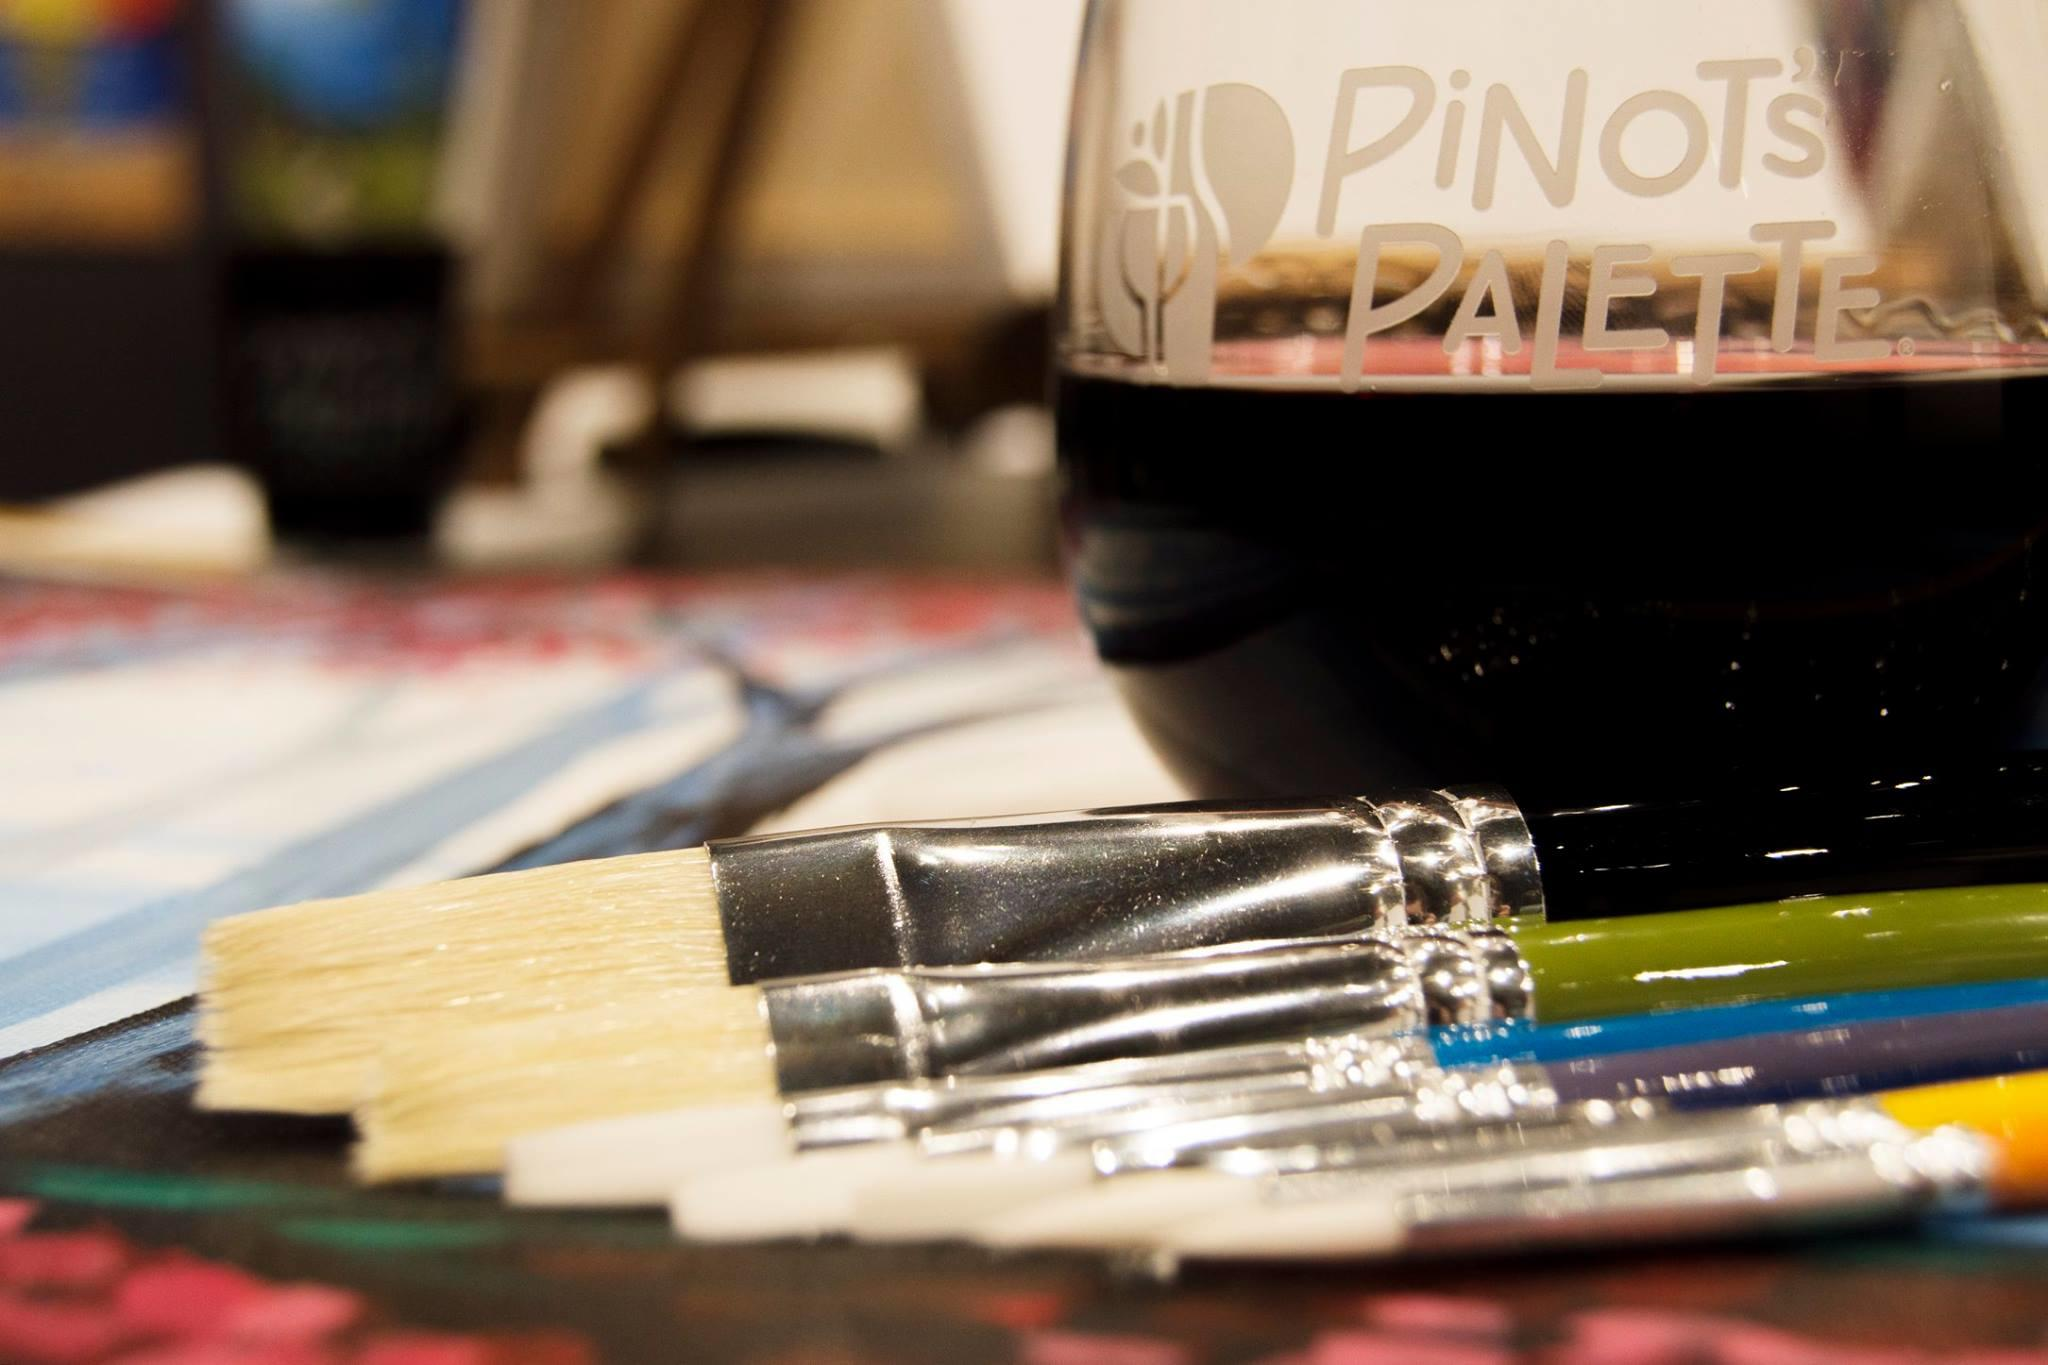 Pinot's Palette image 12